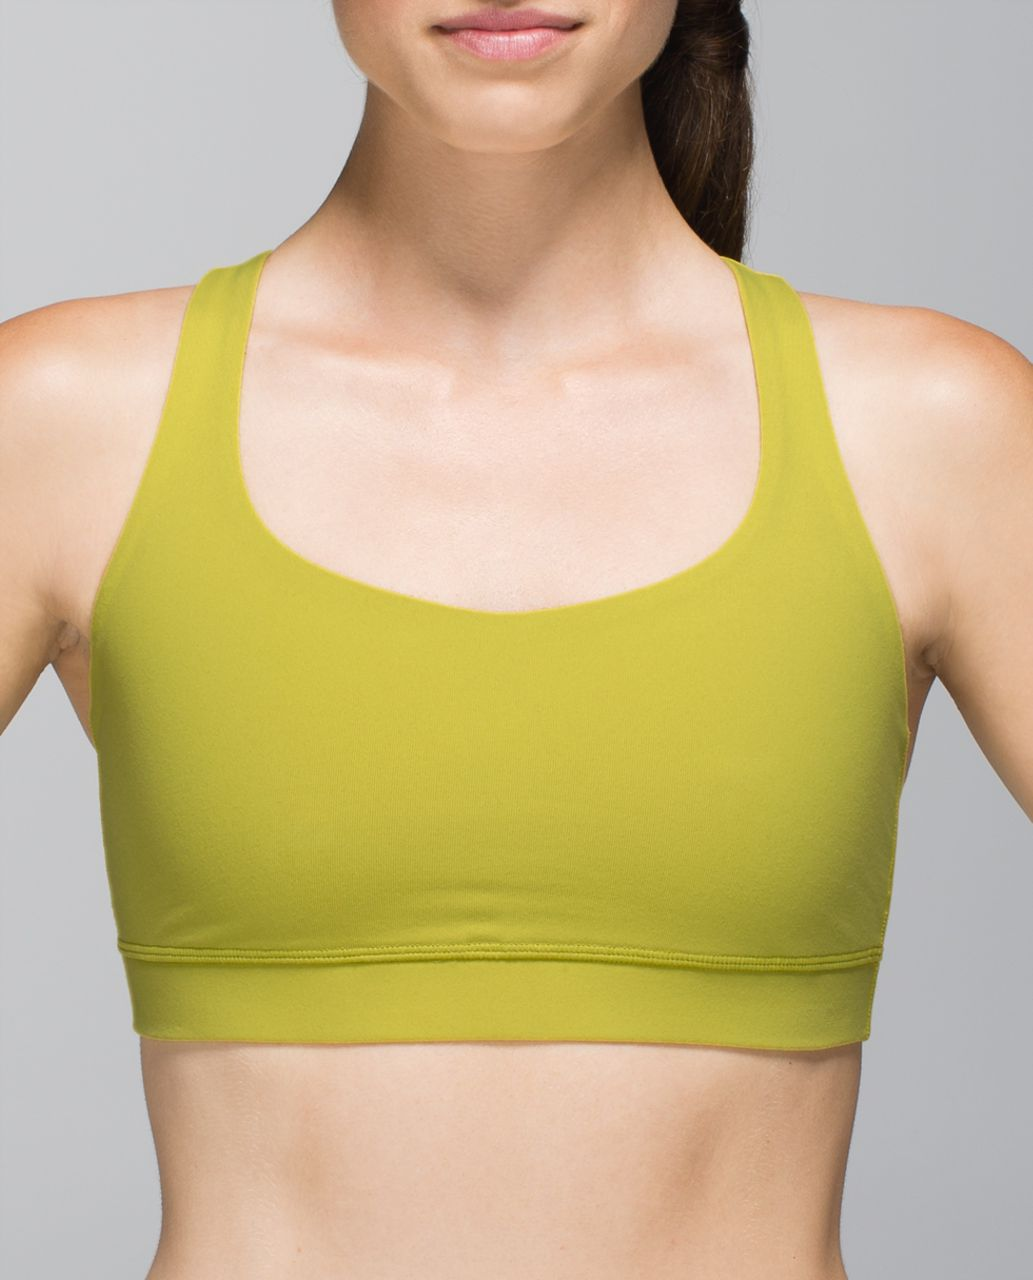 Lululemon 50 Rep Bra - Almost Pear